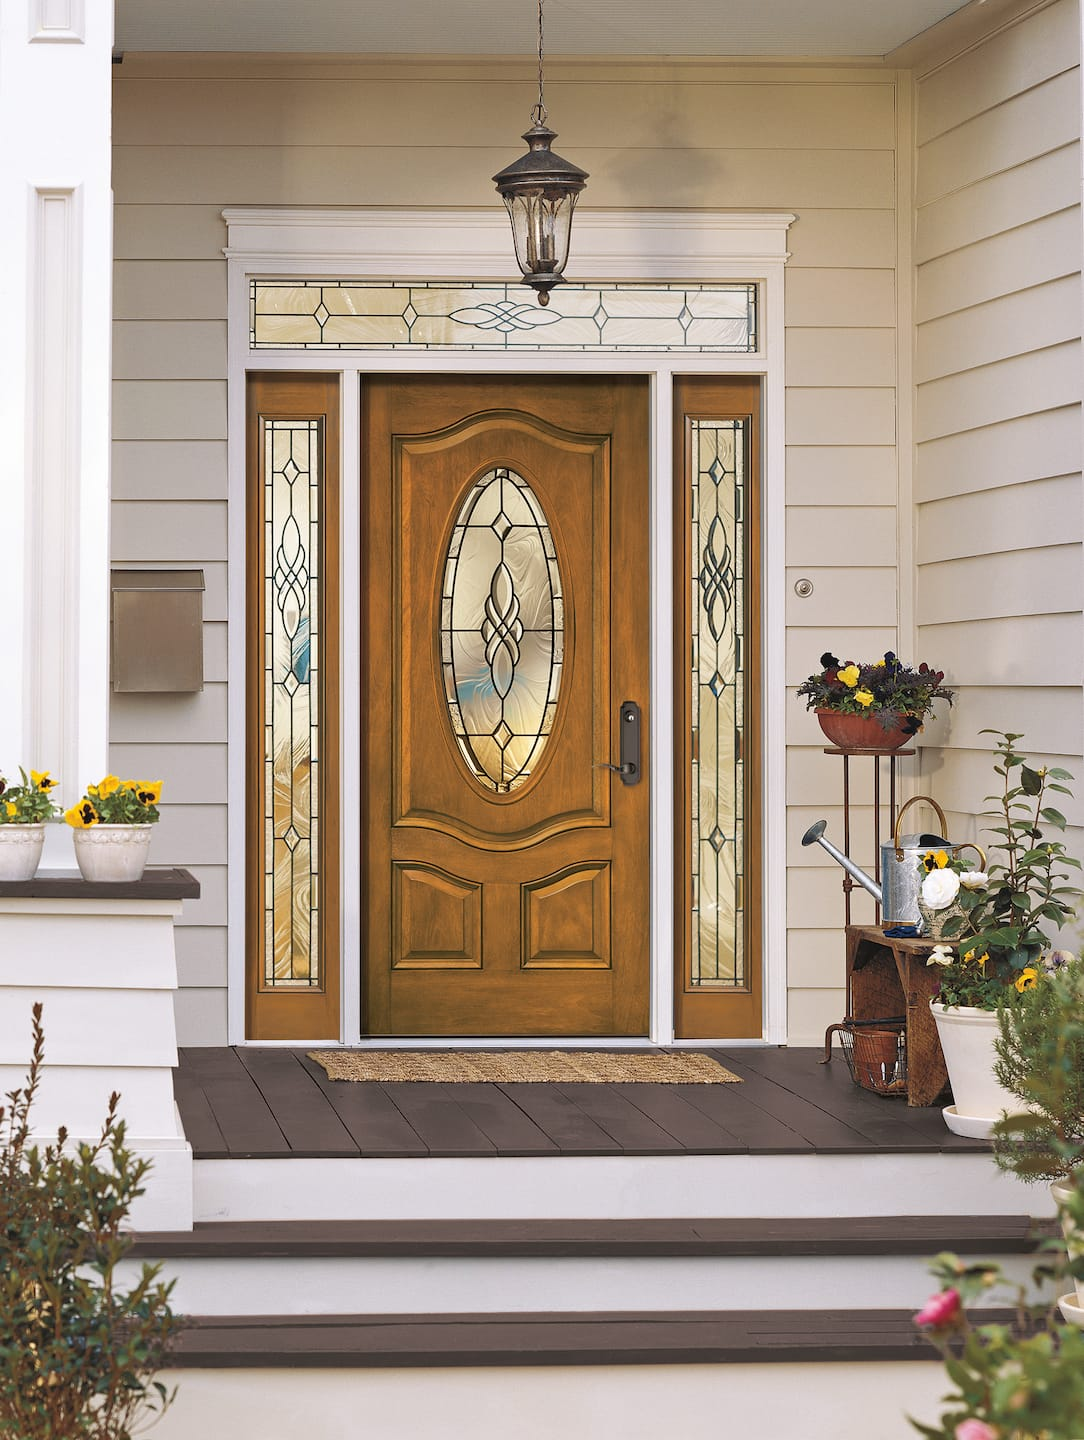 Pella entry doors with sidelights - Pella Sidelight Doors Pezcame Com